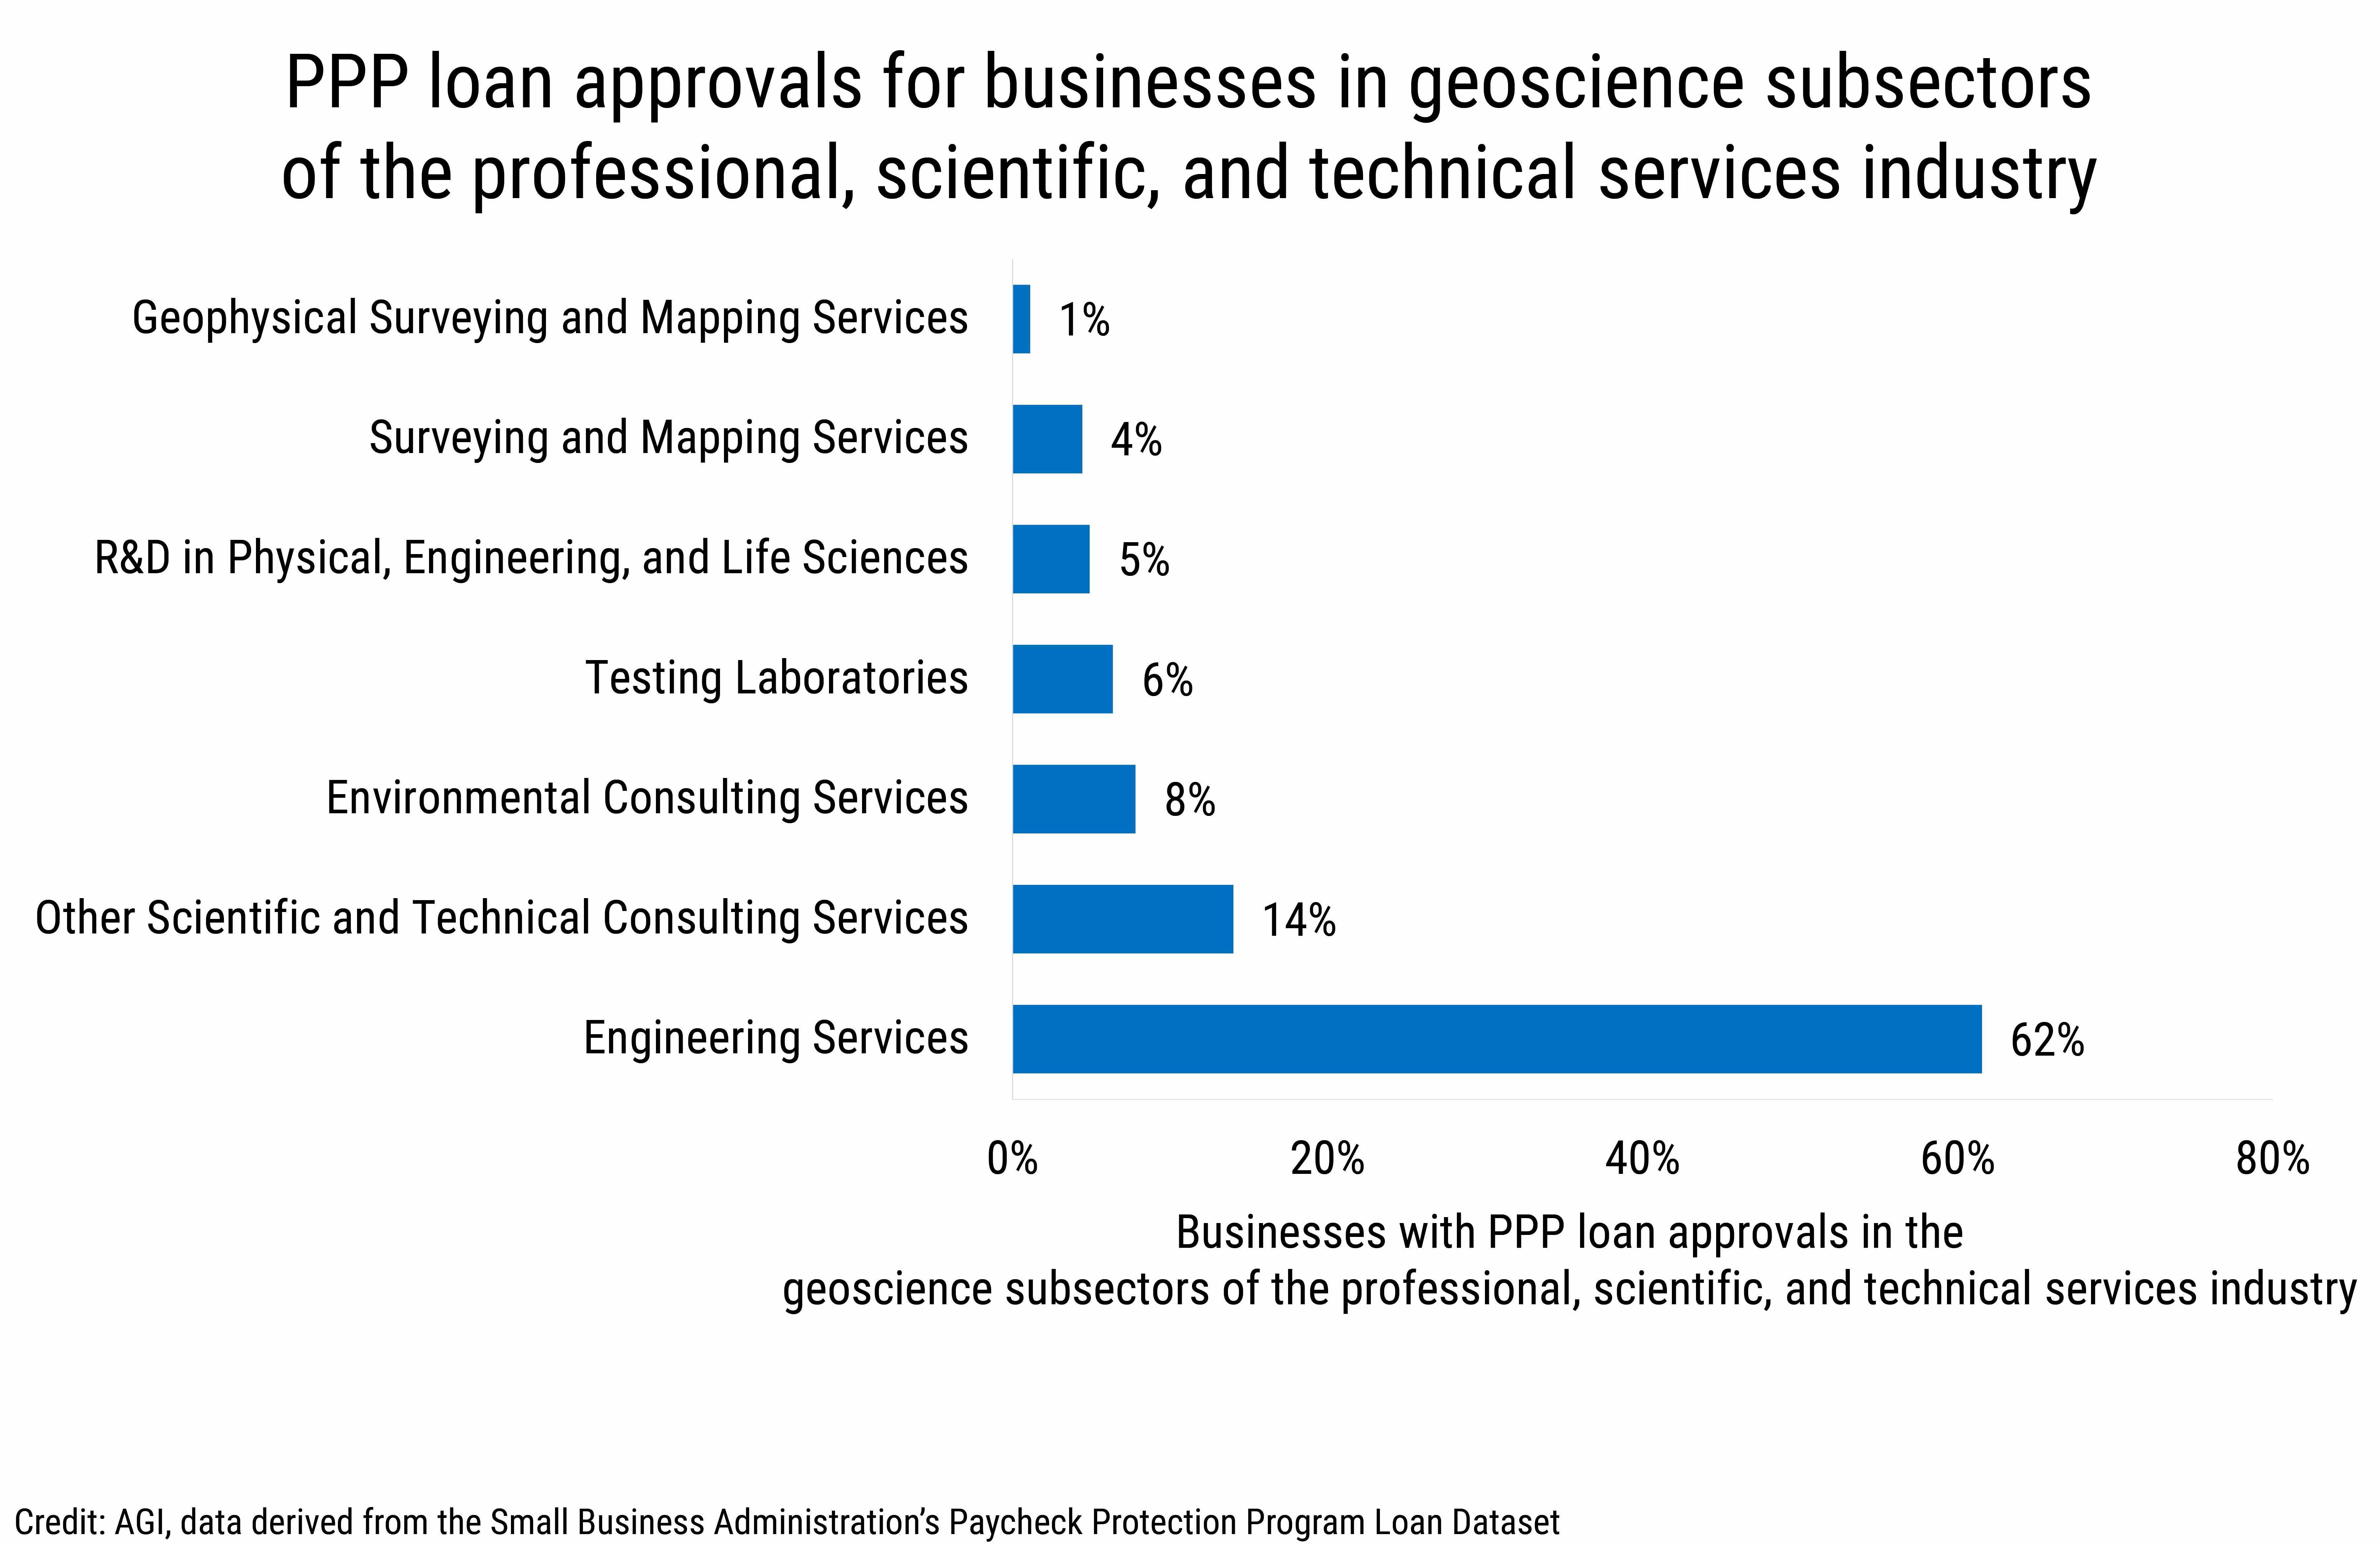 DB_2020-016 chart 02: PPP loan approvals for businesses in geoscience subsectors of the professional, scientific, and technical services industry. (credit: AGI, data derived from the Small Business Administration's Paycheck Protection Program Loan Dataset